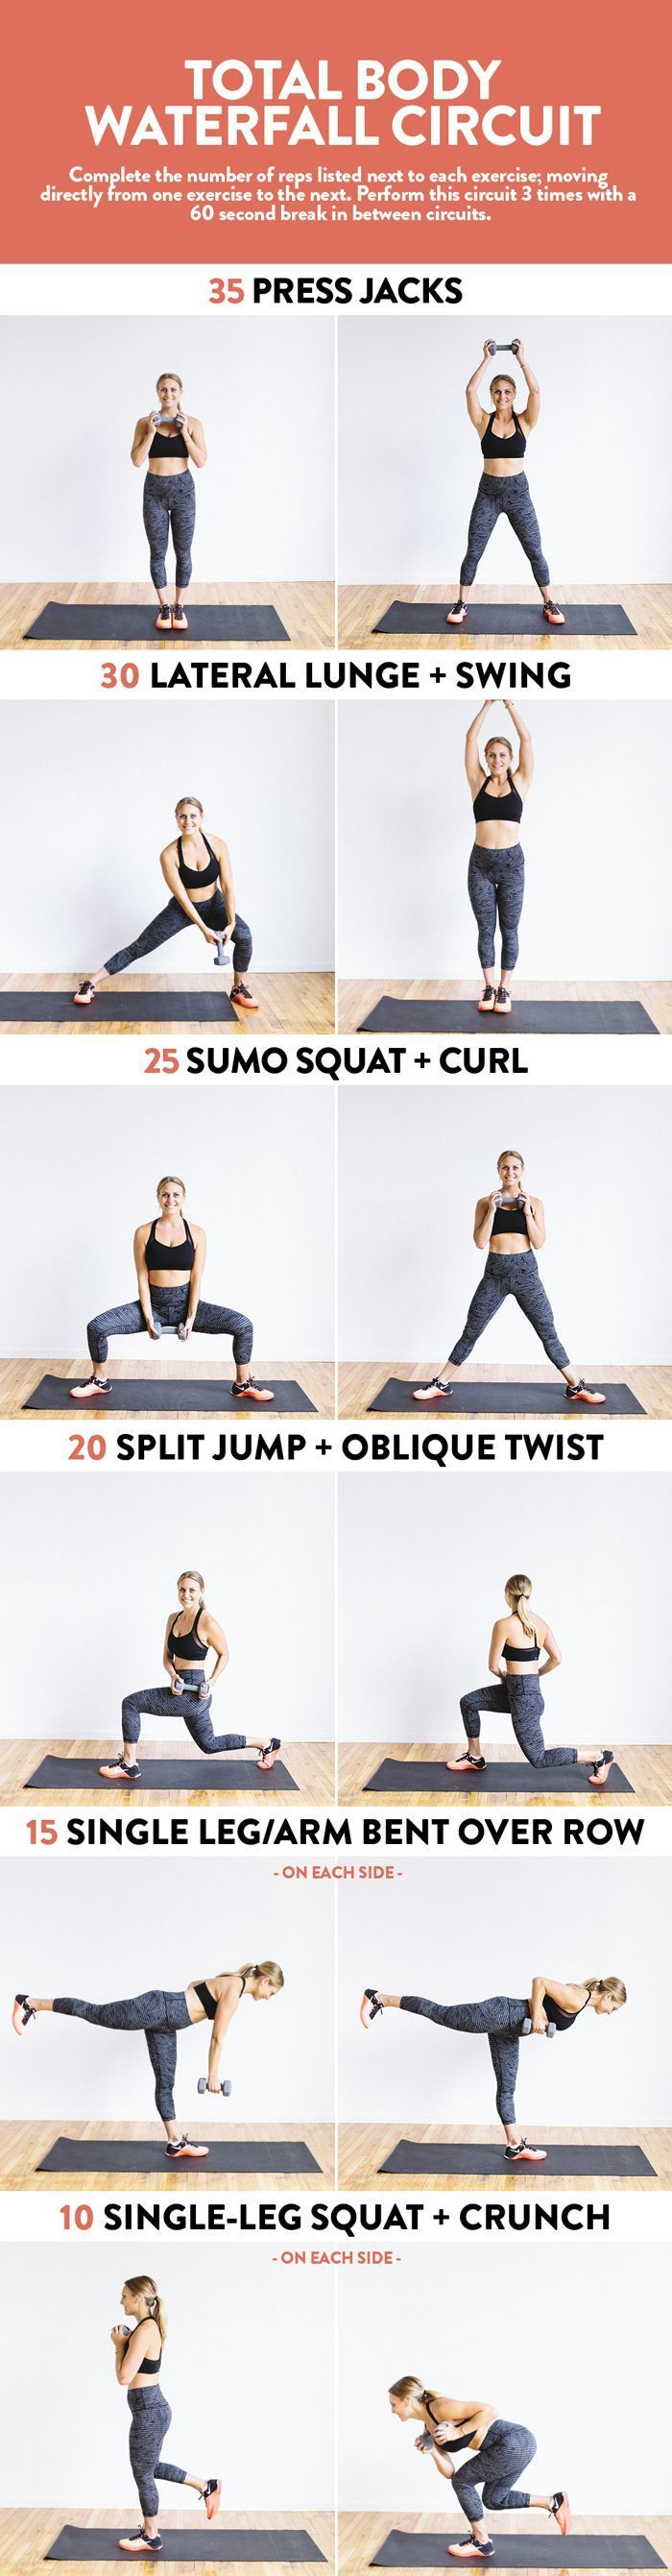 Do this total body waterfall circuit with just 1 dumbbell for a full-body strength workout.